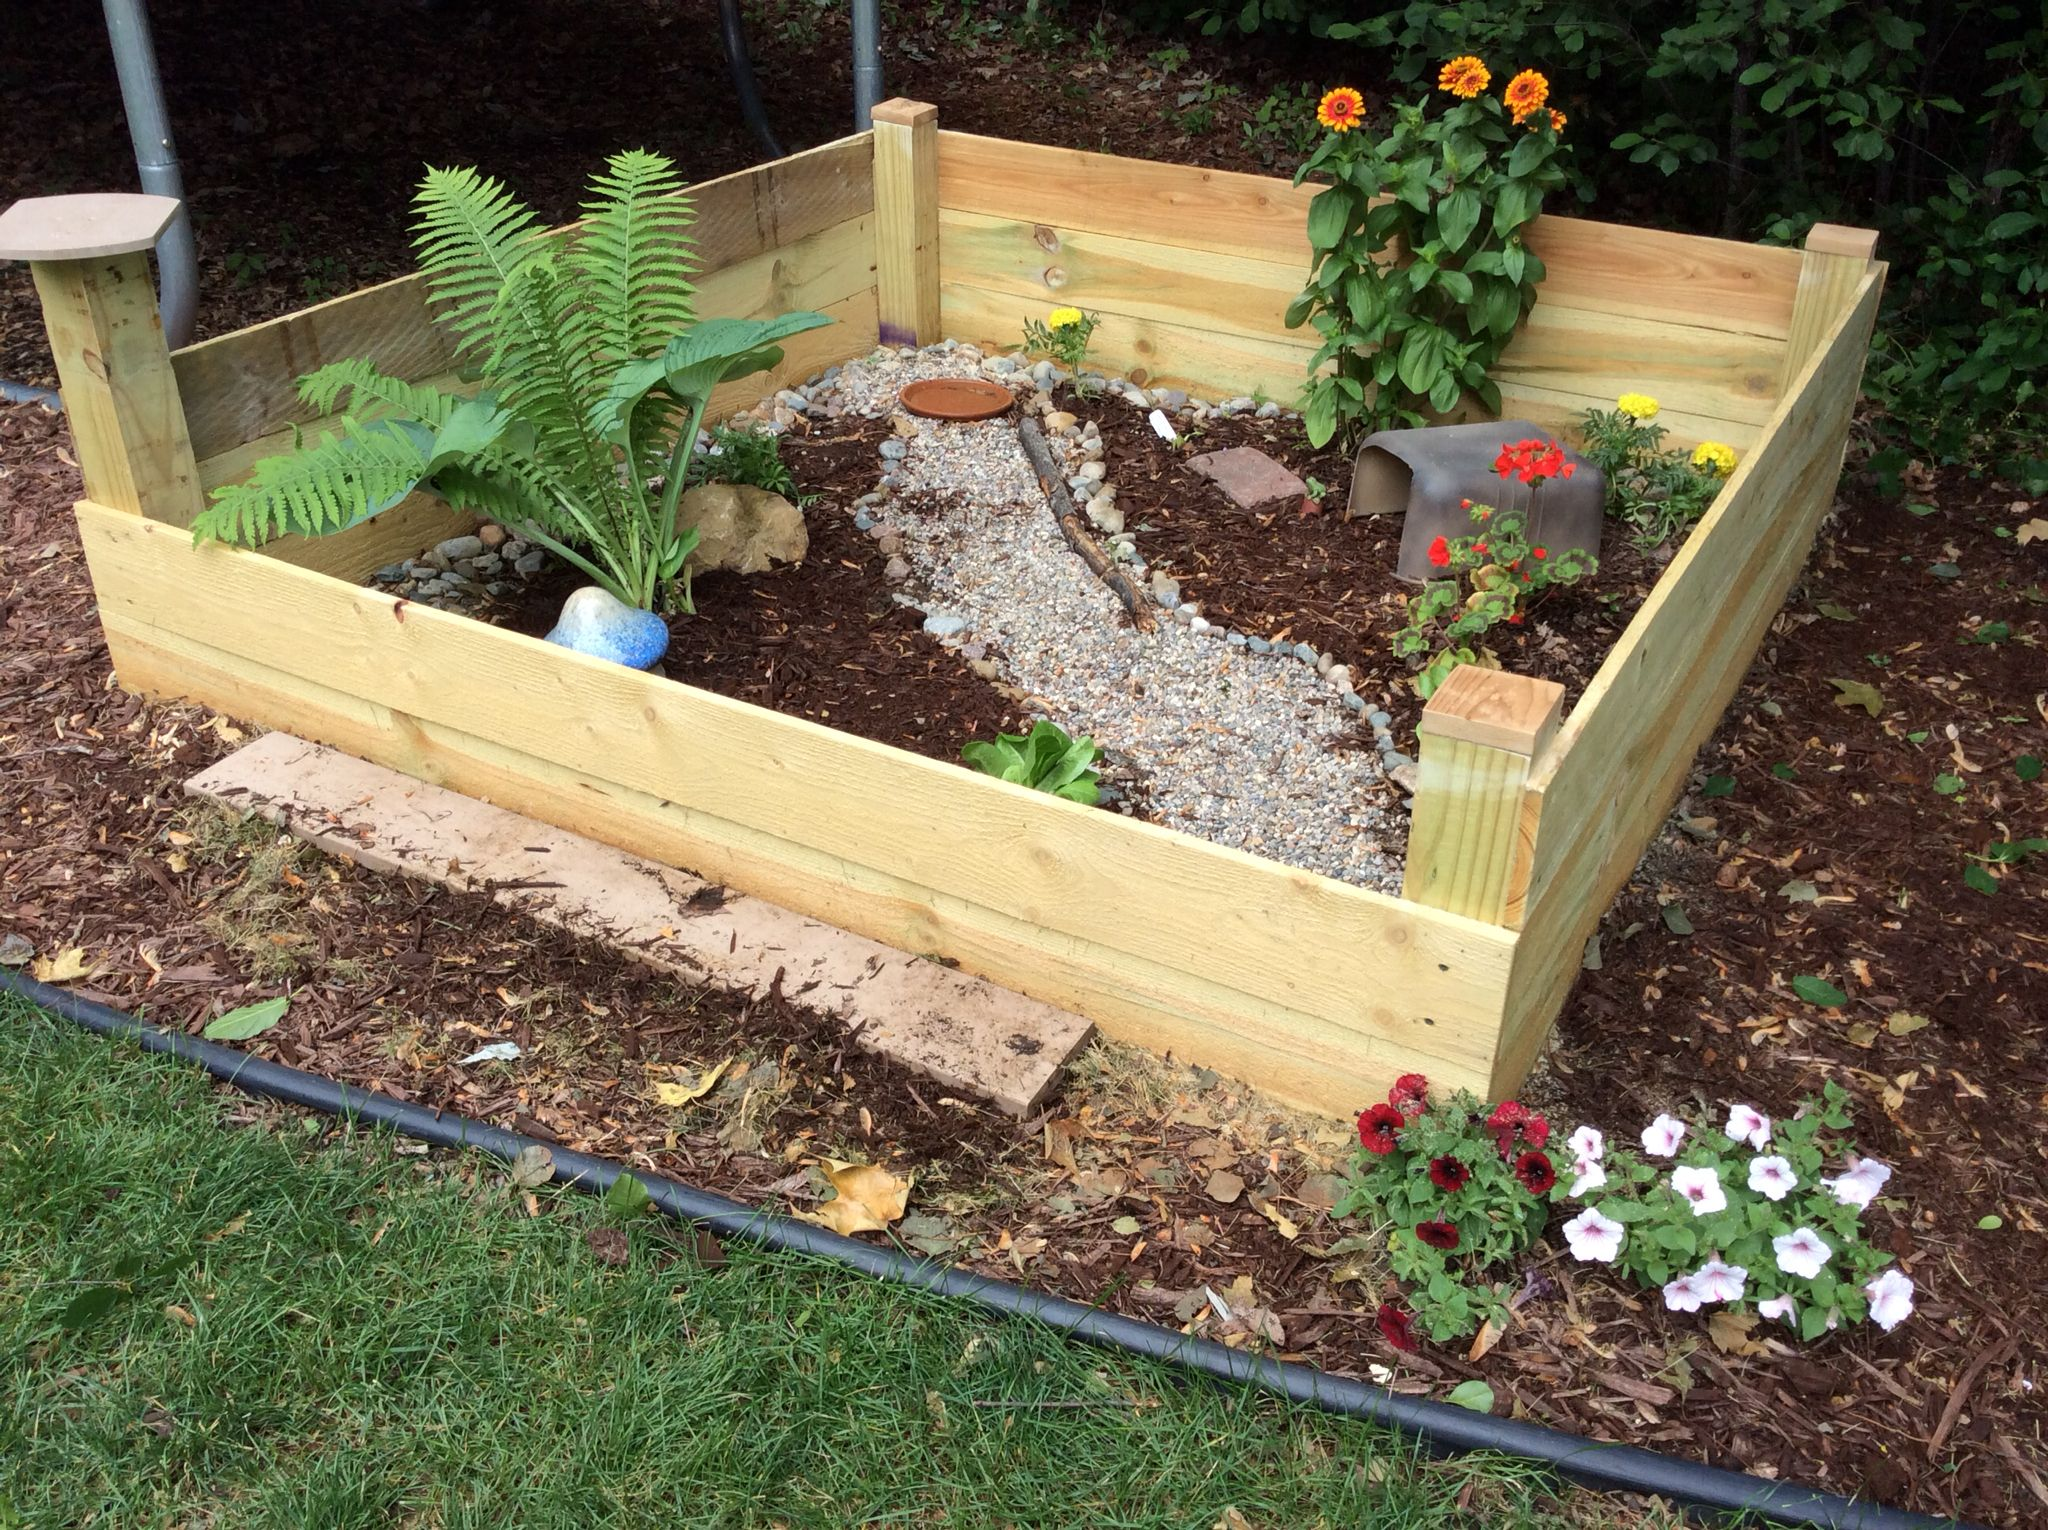 outdoor tortoise enclosure has edible romaine plants gasta